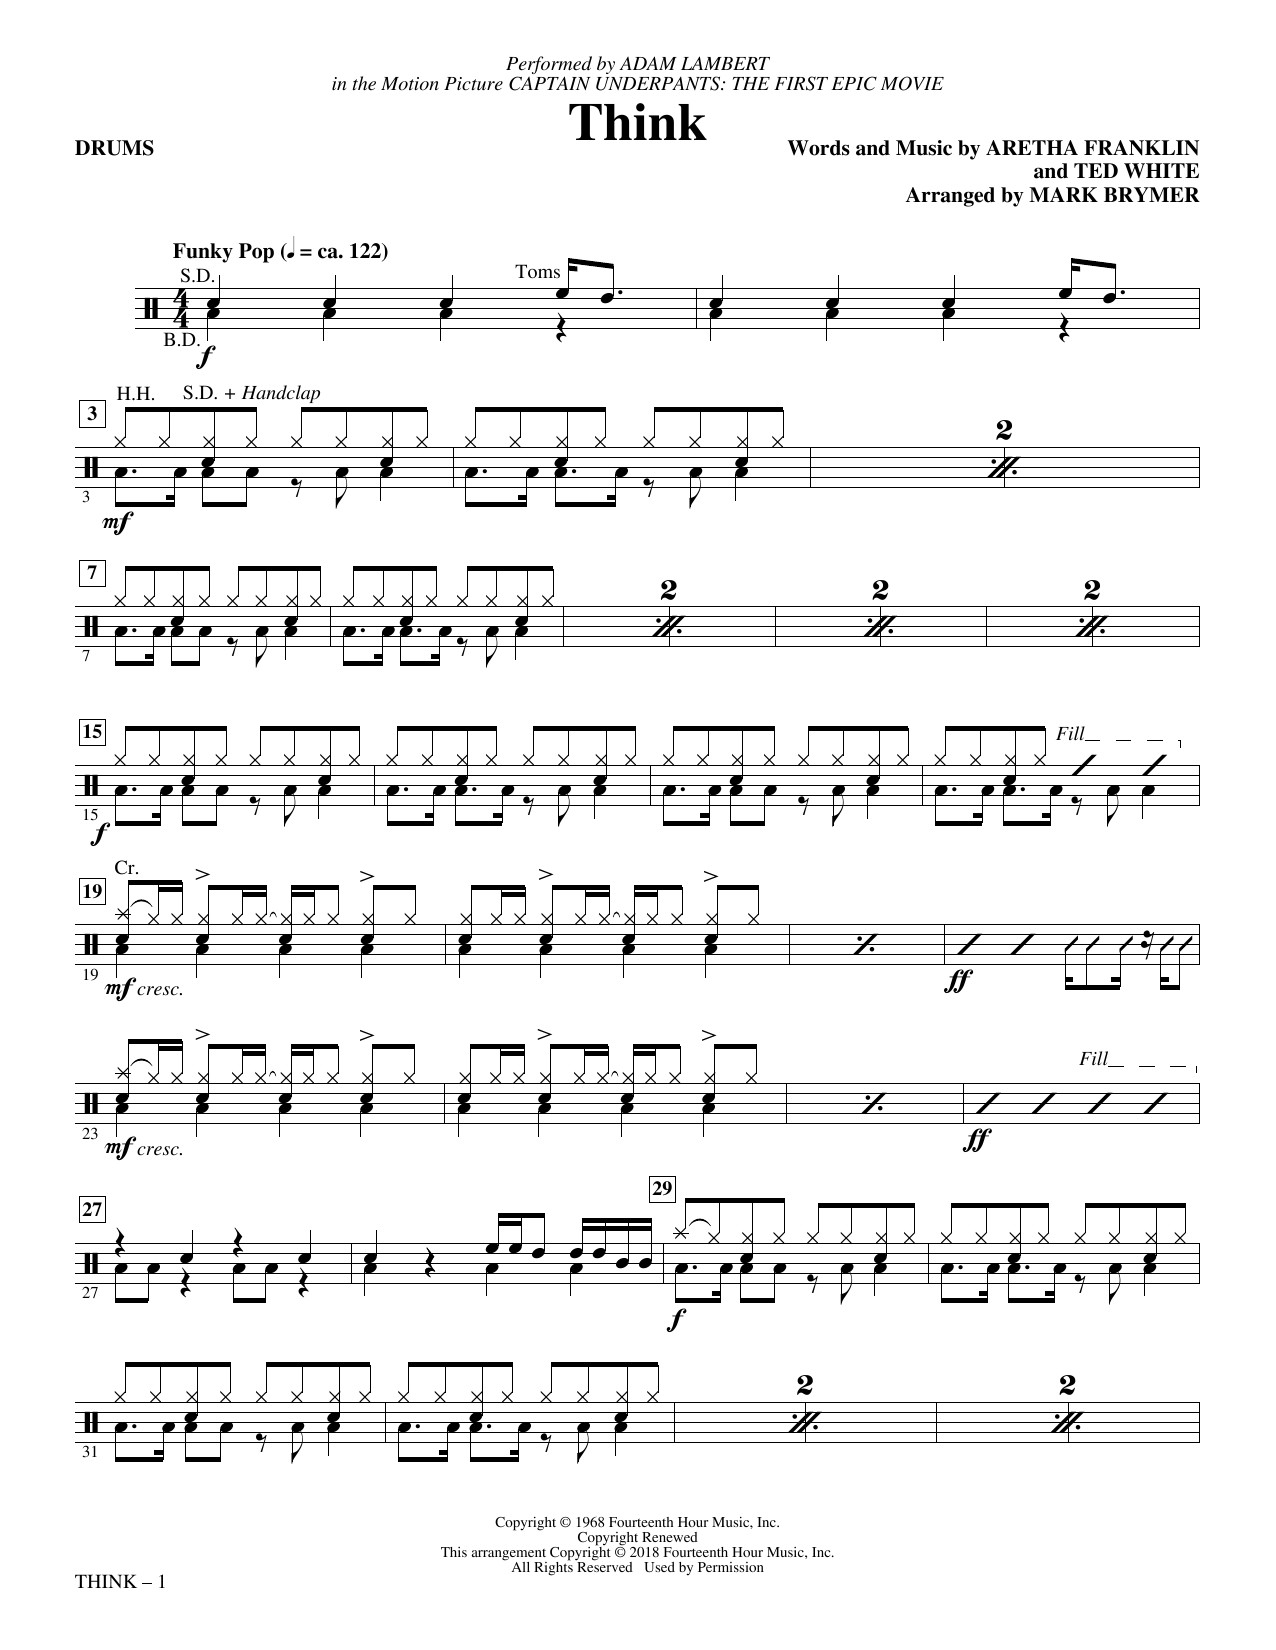 Download Adam Lambert 'Think (from Captain Underpants: The First Epic Movie) (Arr. Mark Brymer) - Drums' Digital Sheet Music Notes & Chords and start playing in minutes